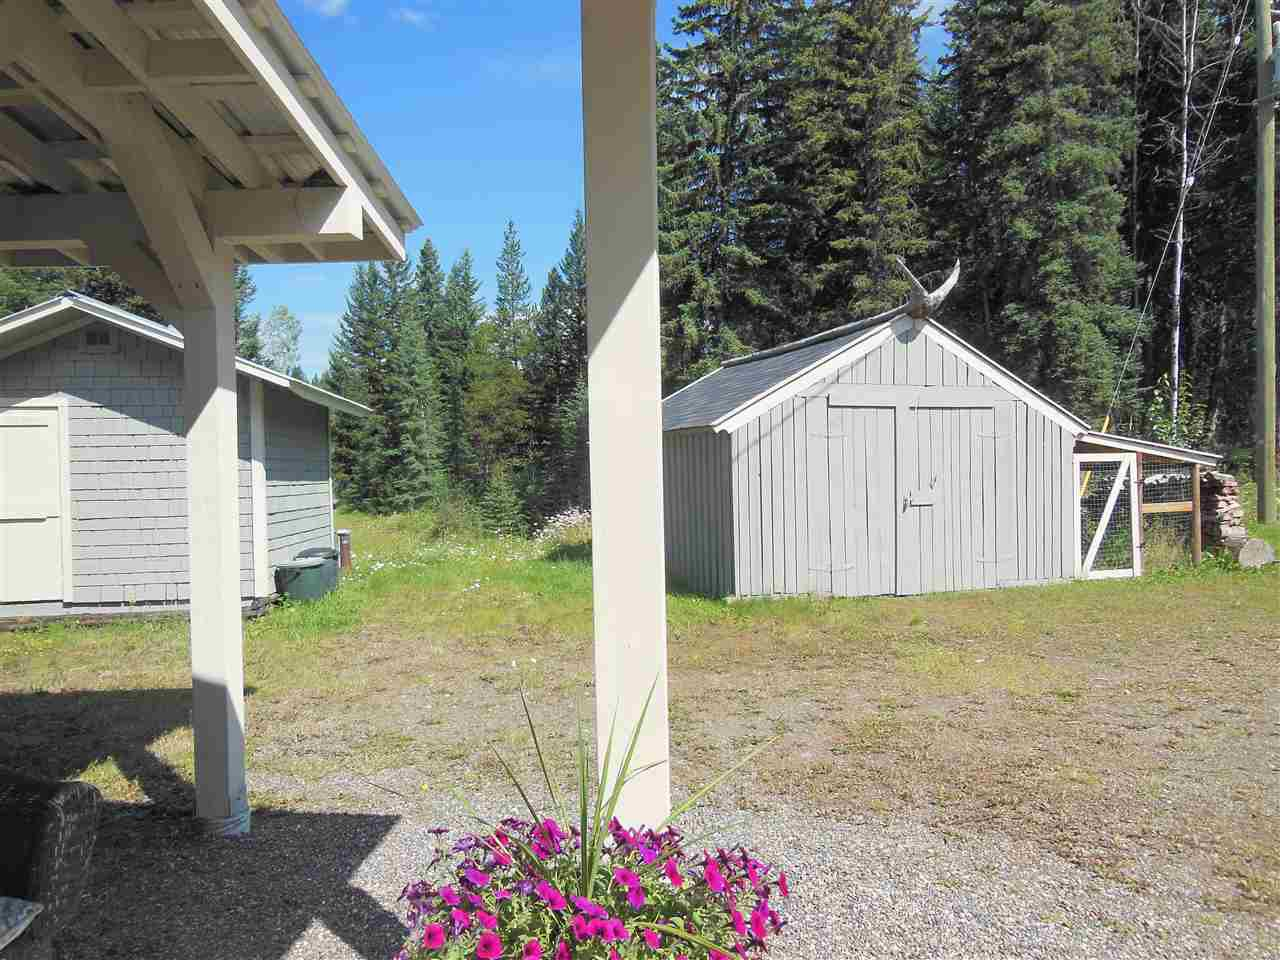 Photo 20: Photos: 3535 WESTWICK PIT Road: 150 Mile House House for sale (Williams Lake (Zone 27))  : MLS®# R2488772